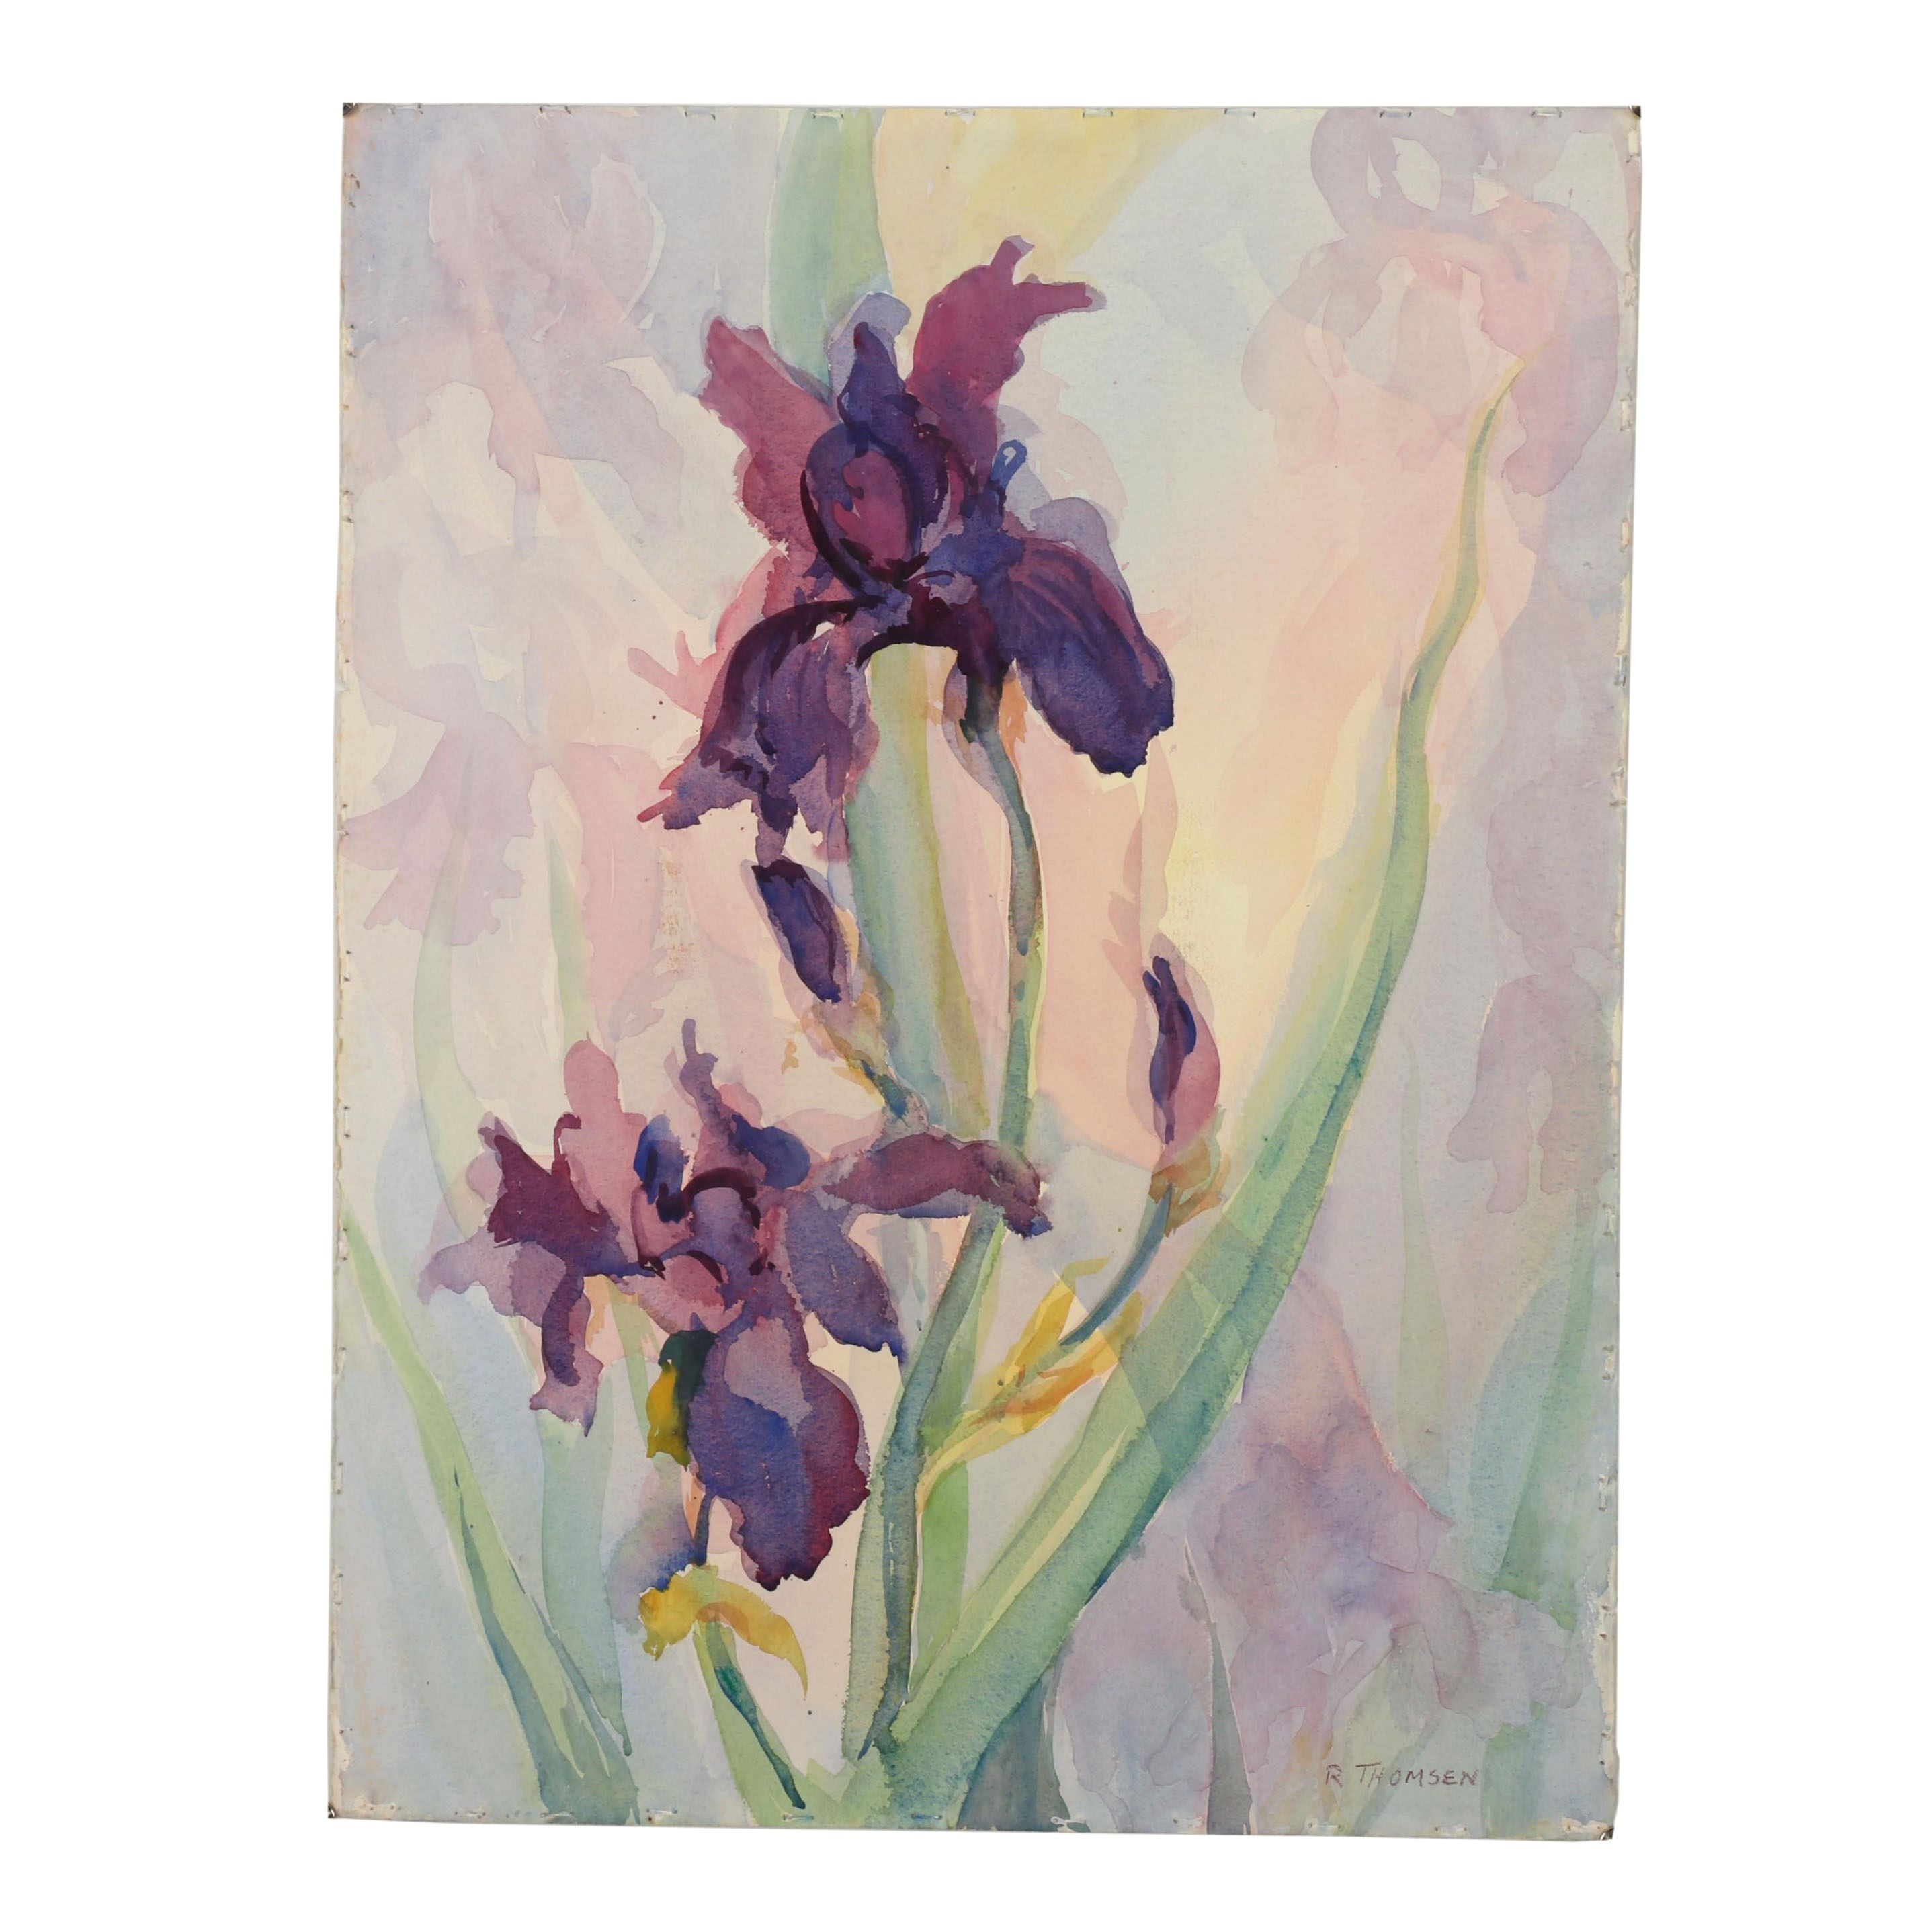 Richard Thomsen Watercolor Painting of Irises